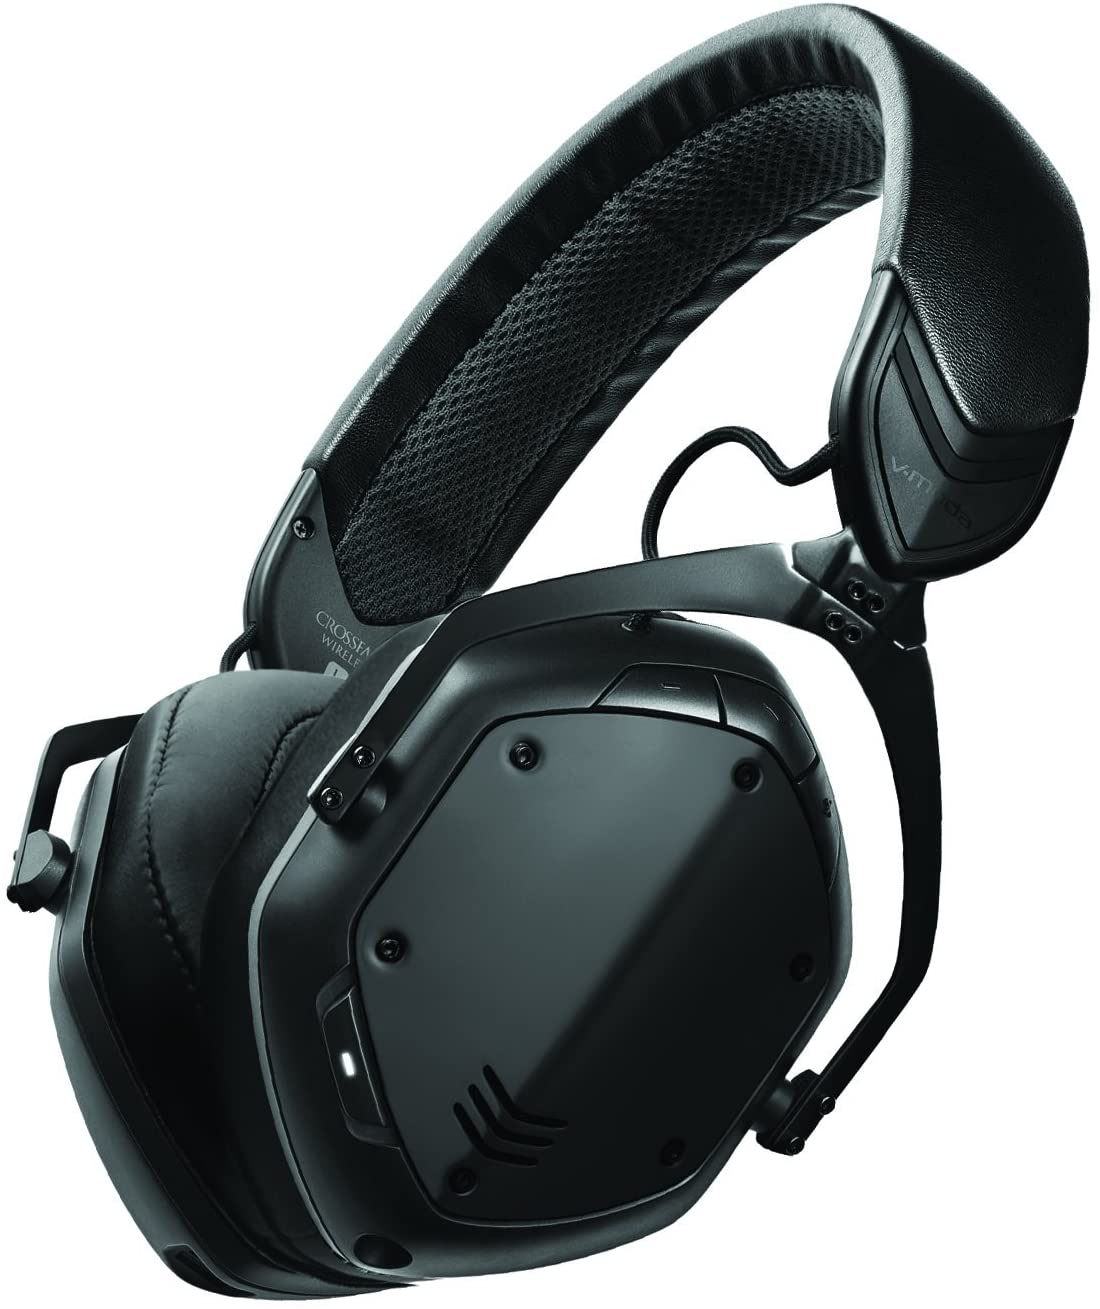 10 Best Closed Back Headphones 2021 - Buying Guide 6